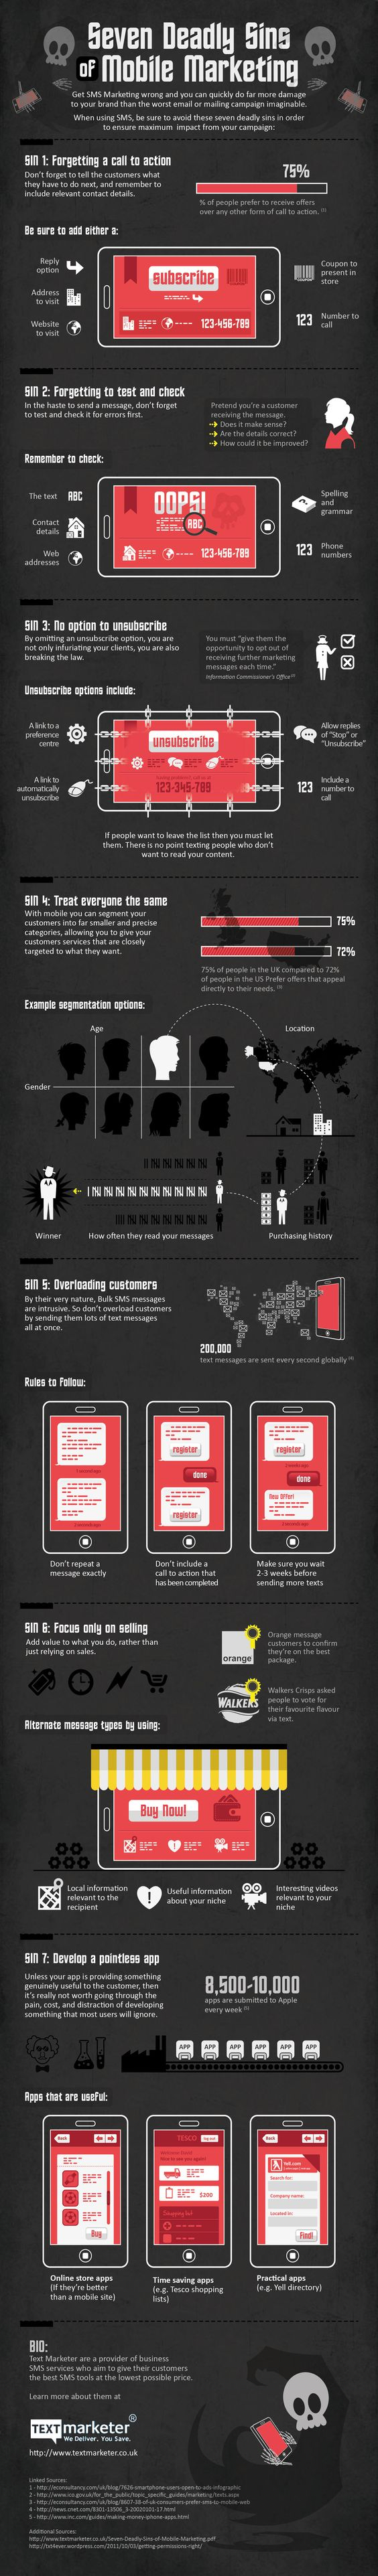 Seven-Deadly-Sins-Of-Mobile-Marketing-infographic  Find always more on  http://infographicsmania.com